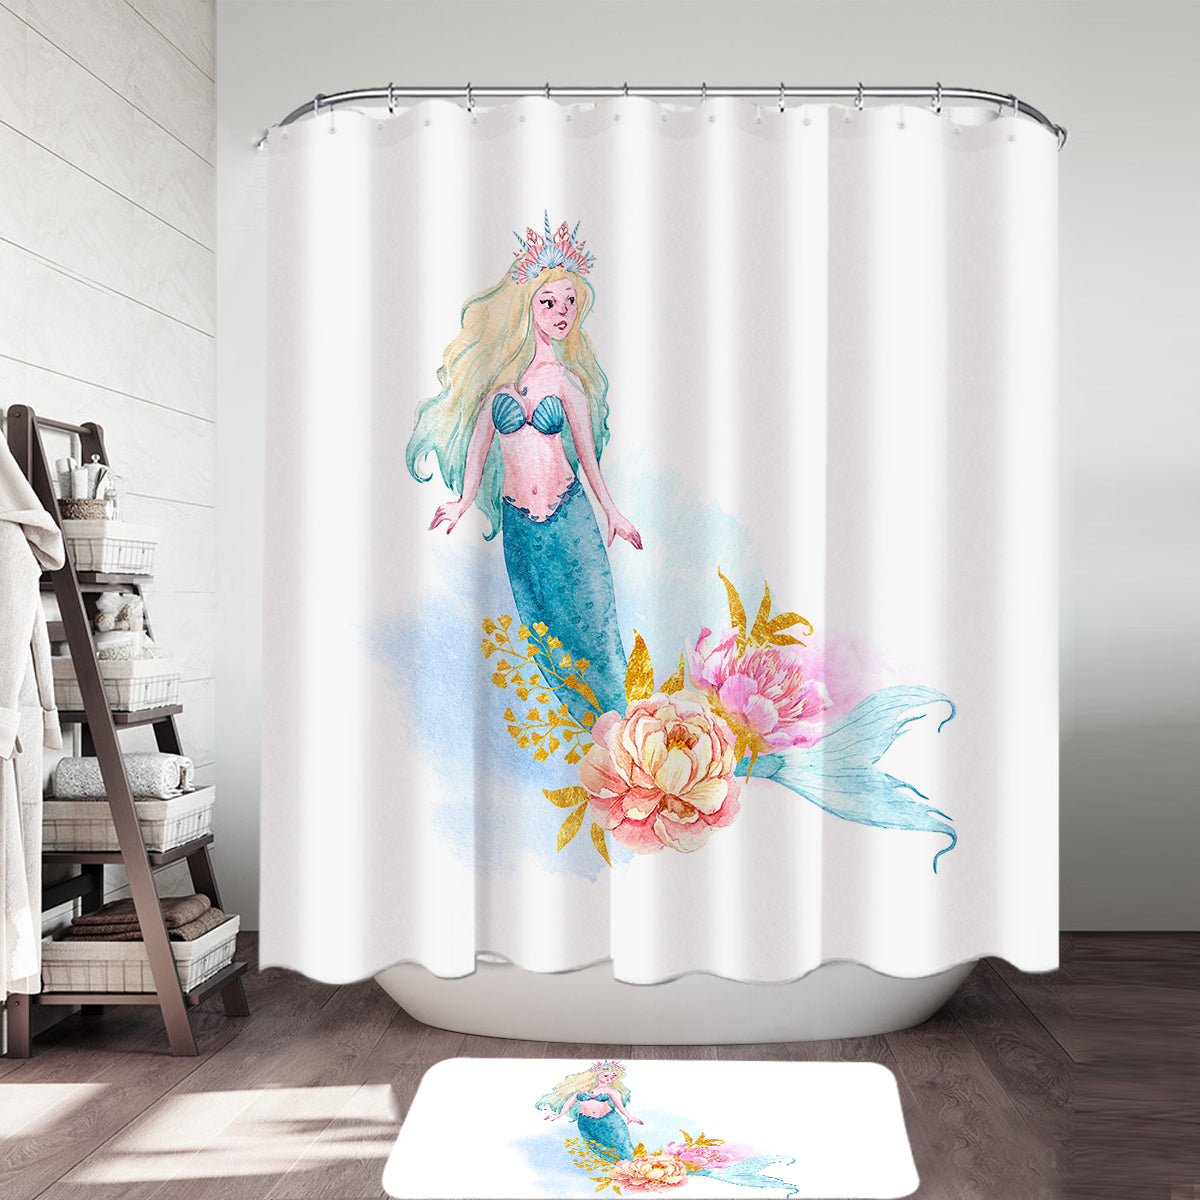 Mermaid Delight Shower Curtain